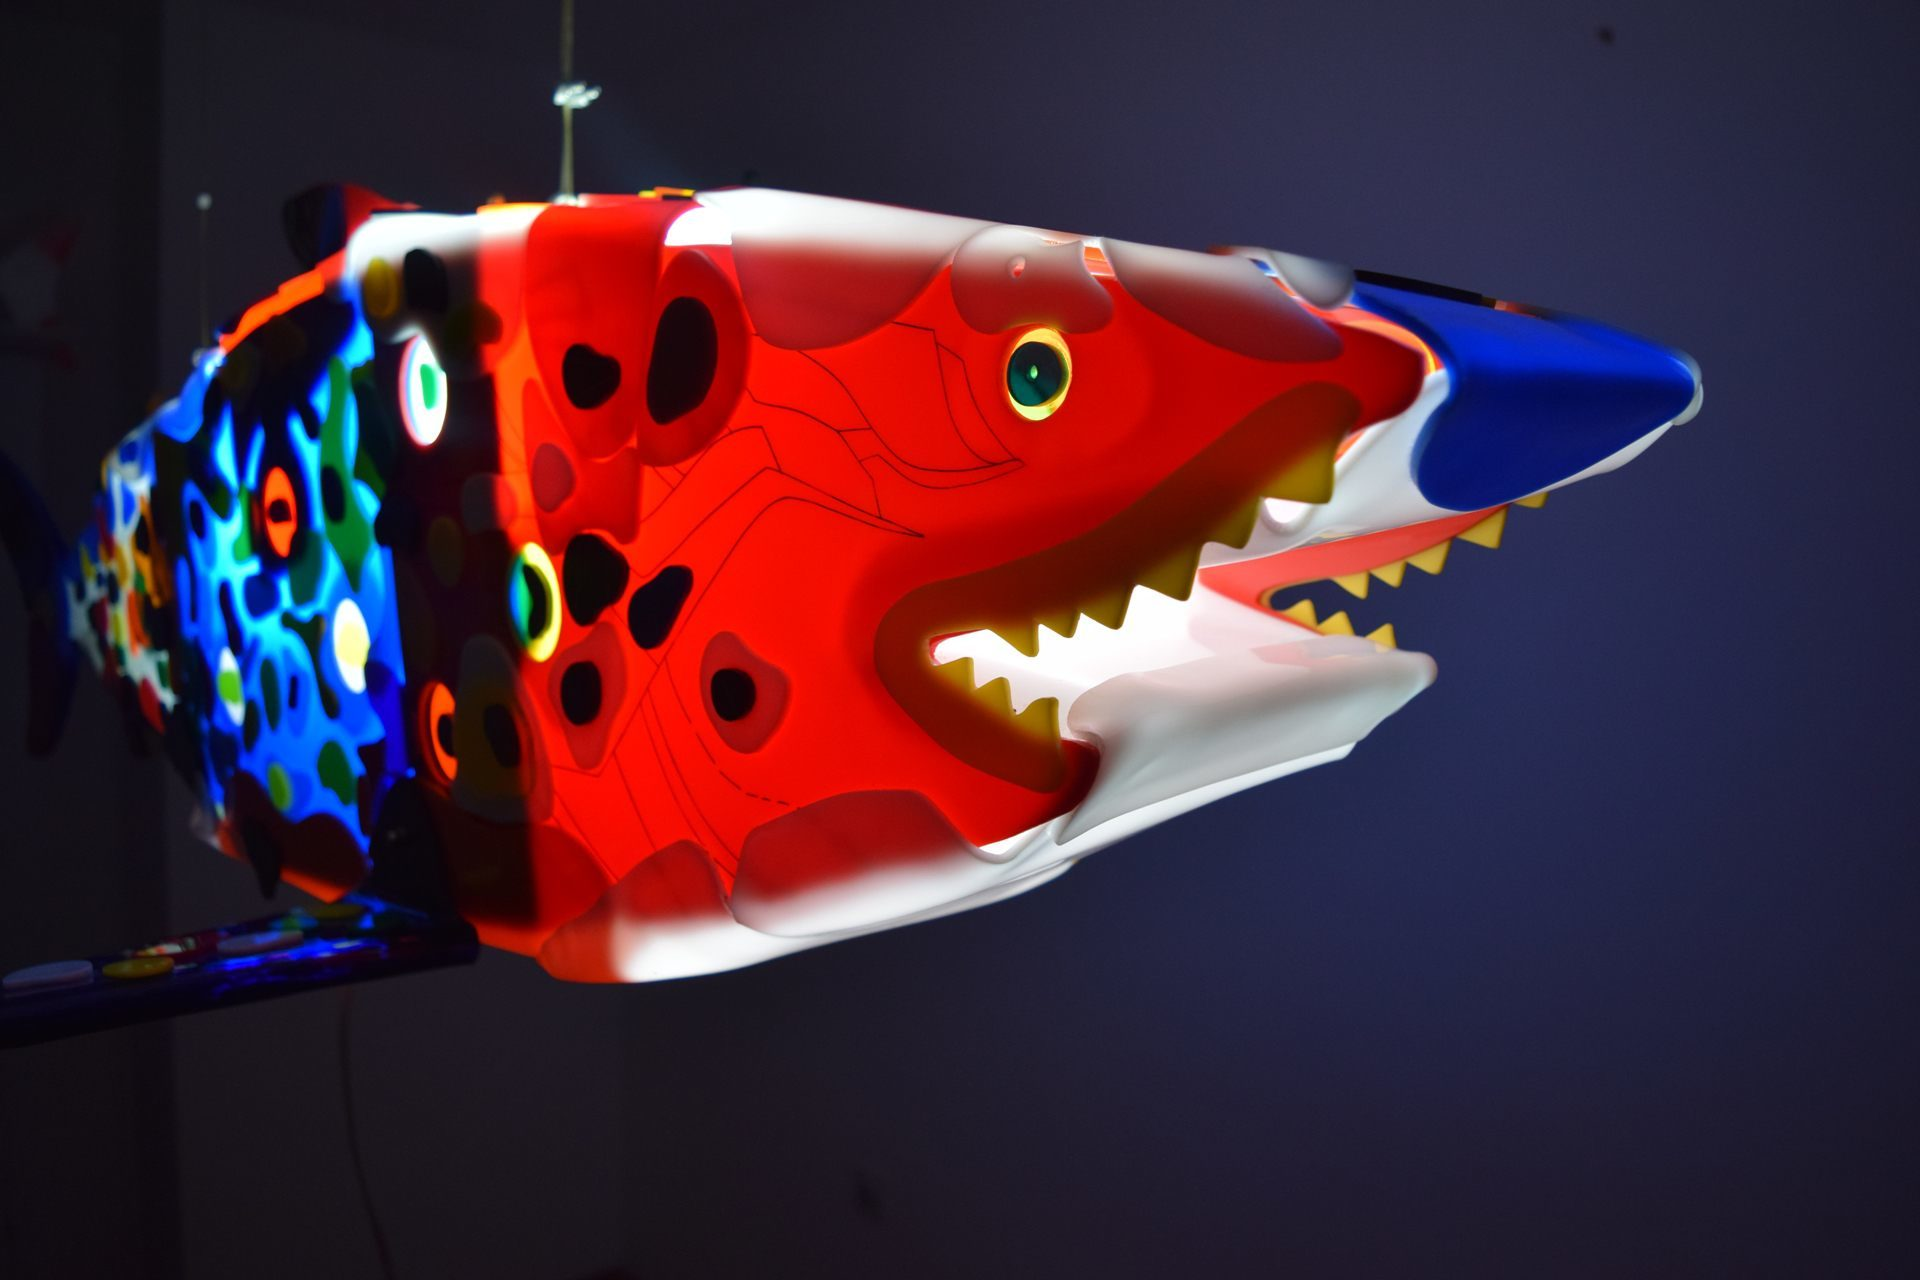 Red and blue shark sculpture made from Plexiglas